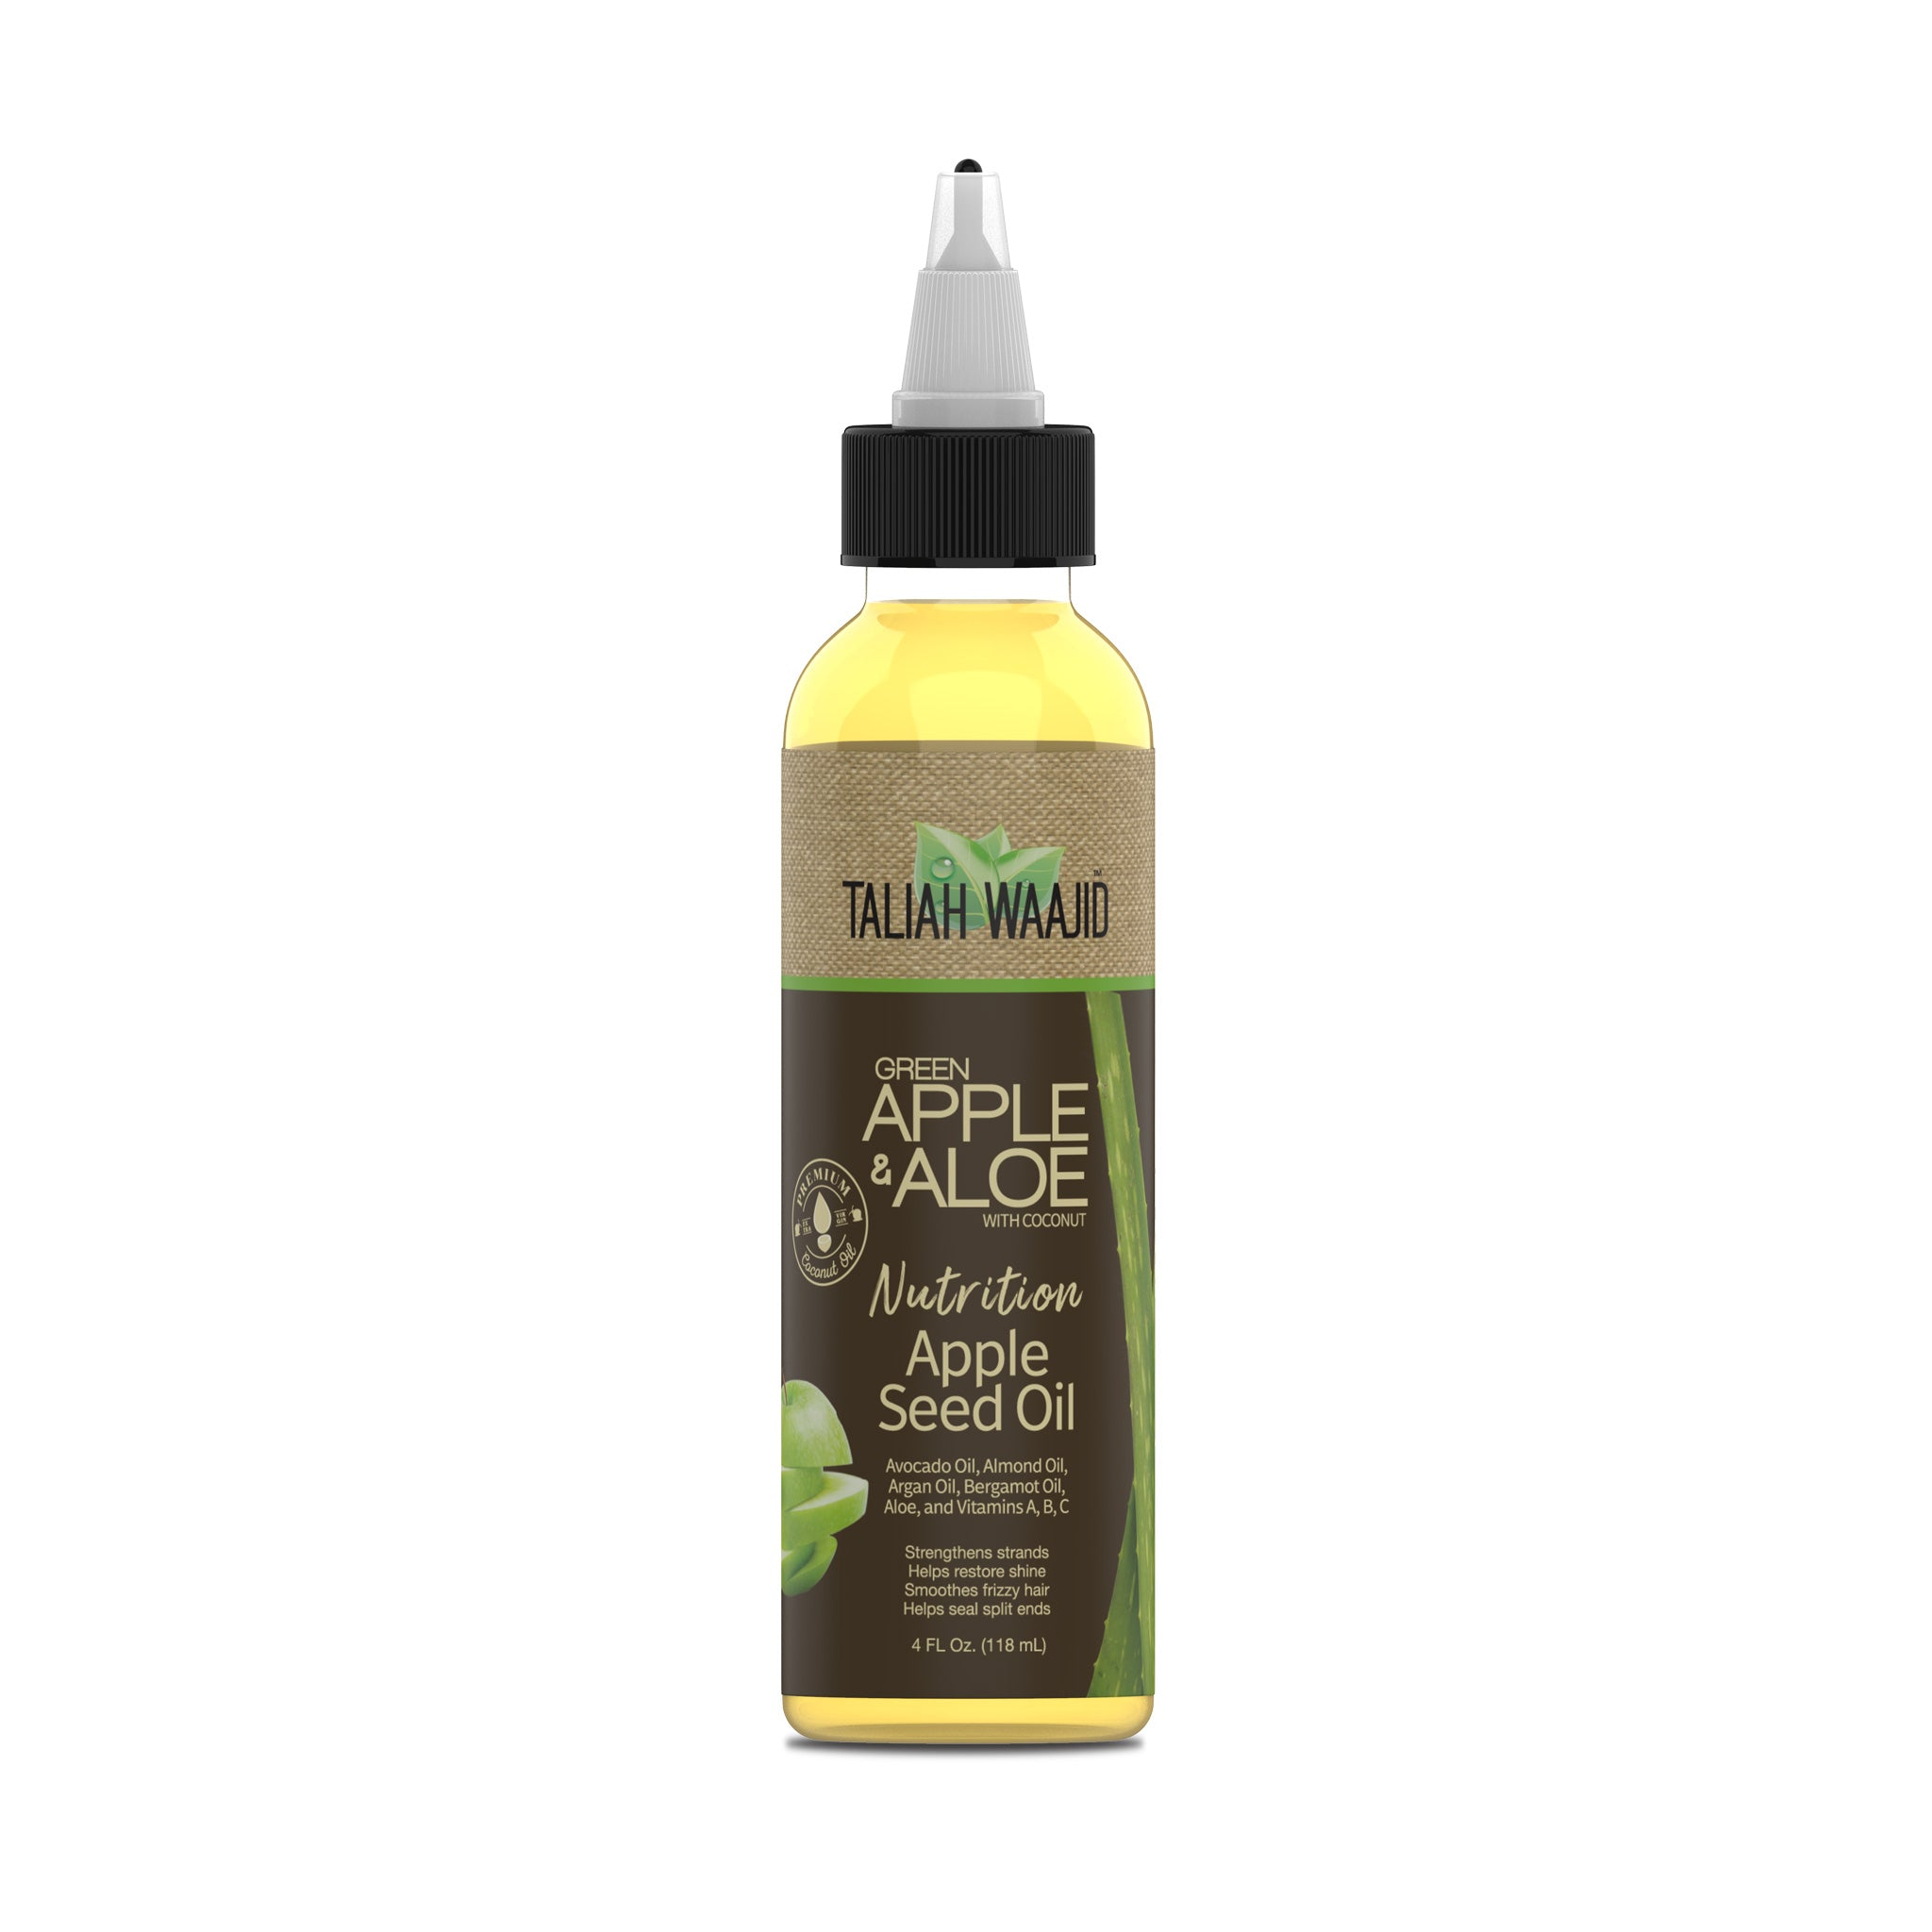 Green Apple & Aloe Nutrition Apple Seed Oil 4oz